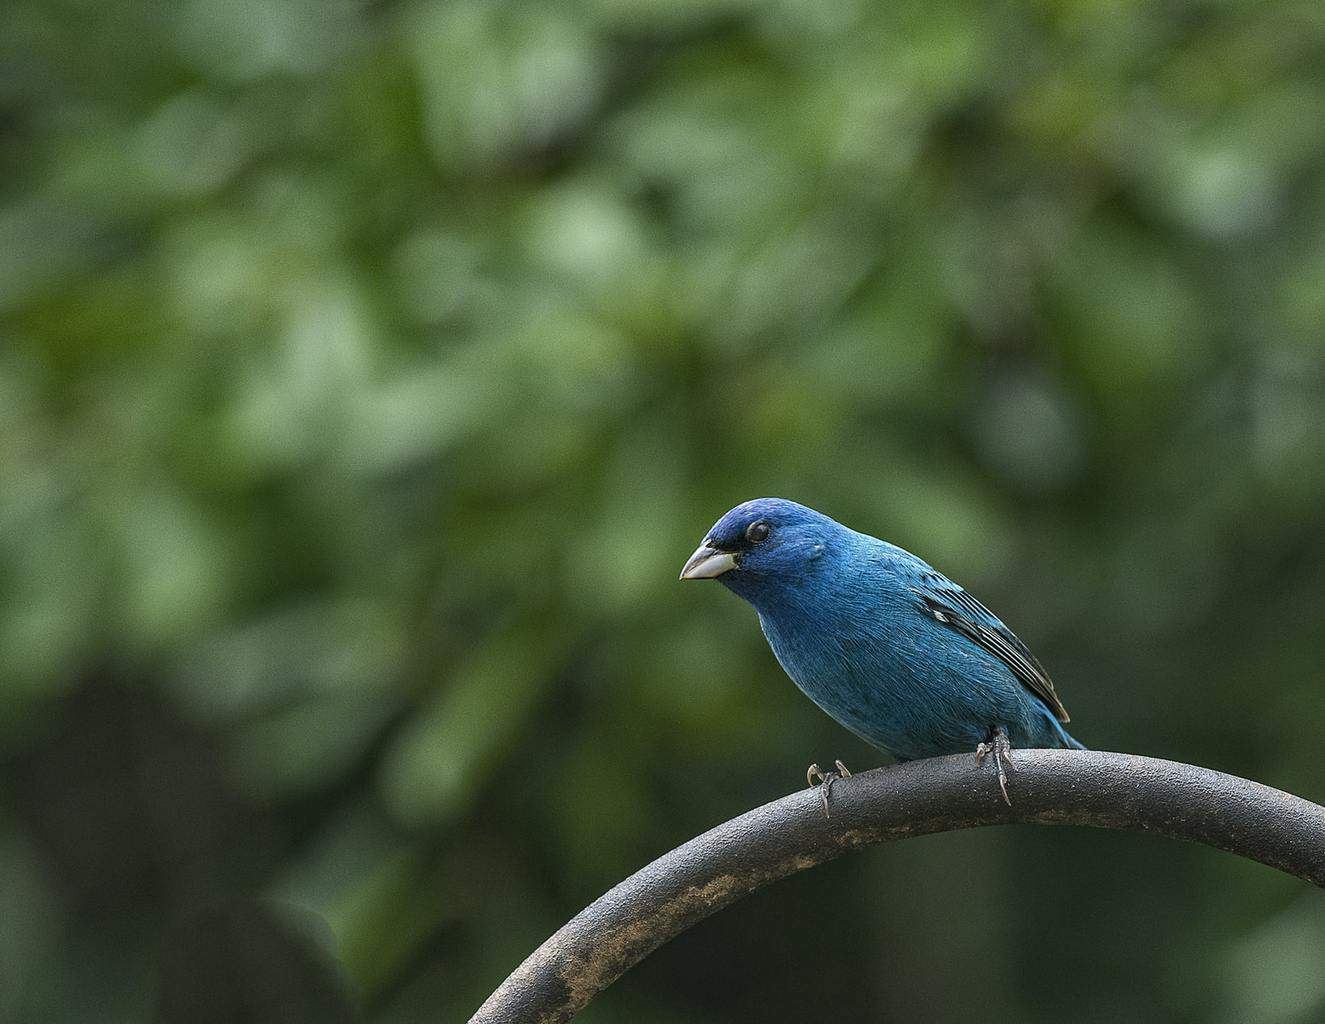 North American Bird with Blue Bellies